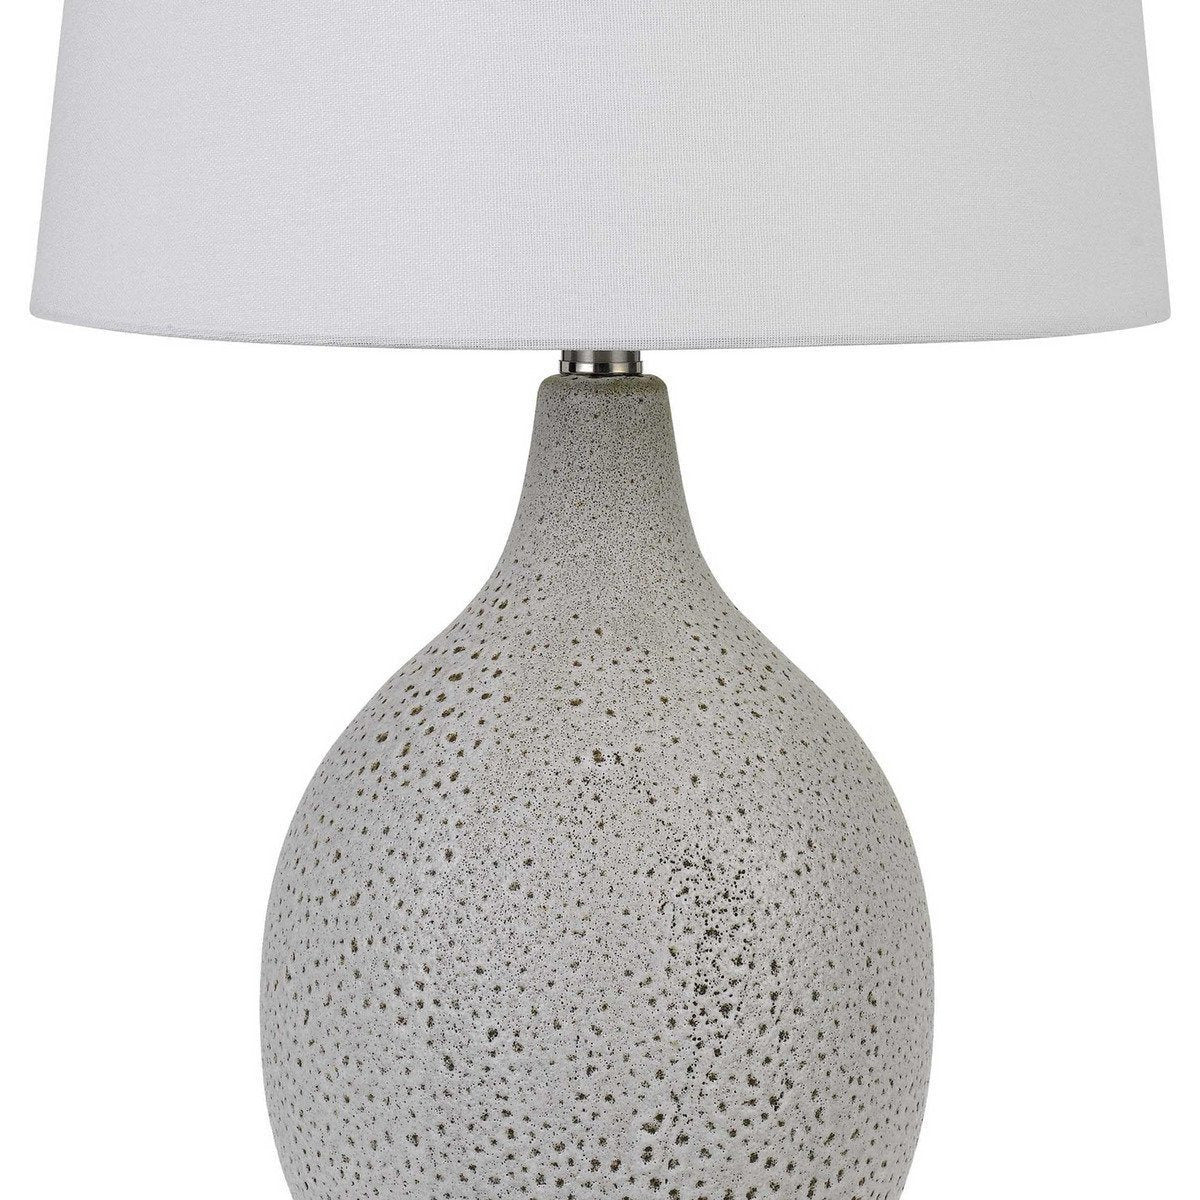 Table Lamps - Textured Ceramic Table Lamp With Round Base, White And Chrome